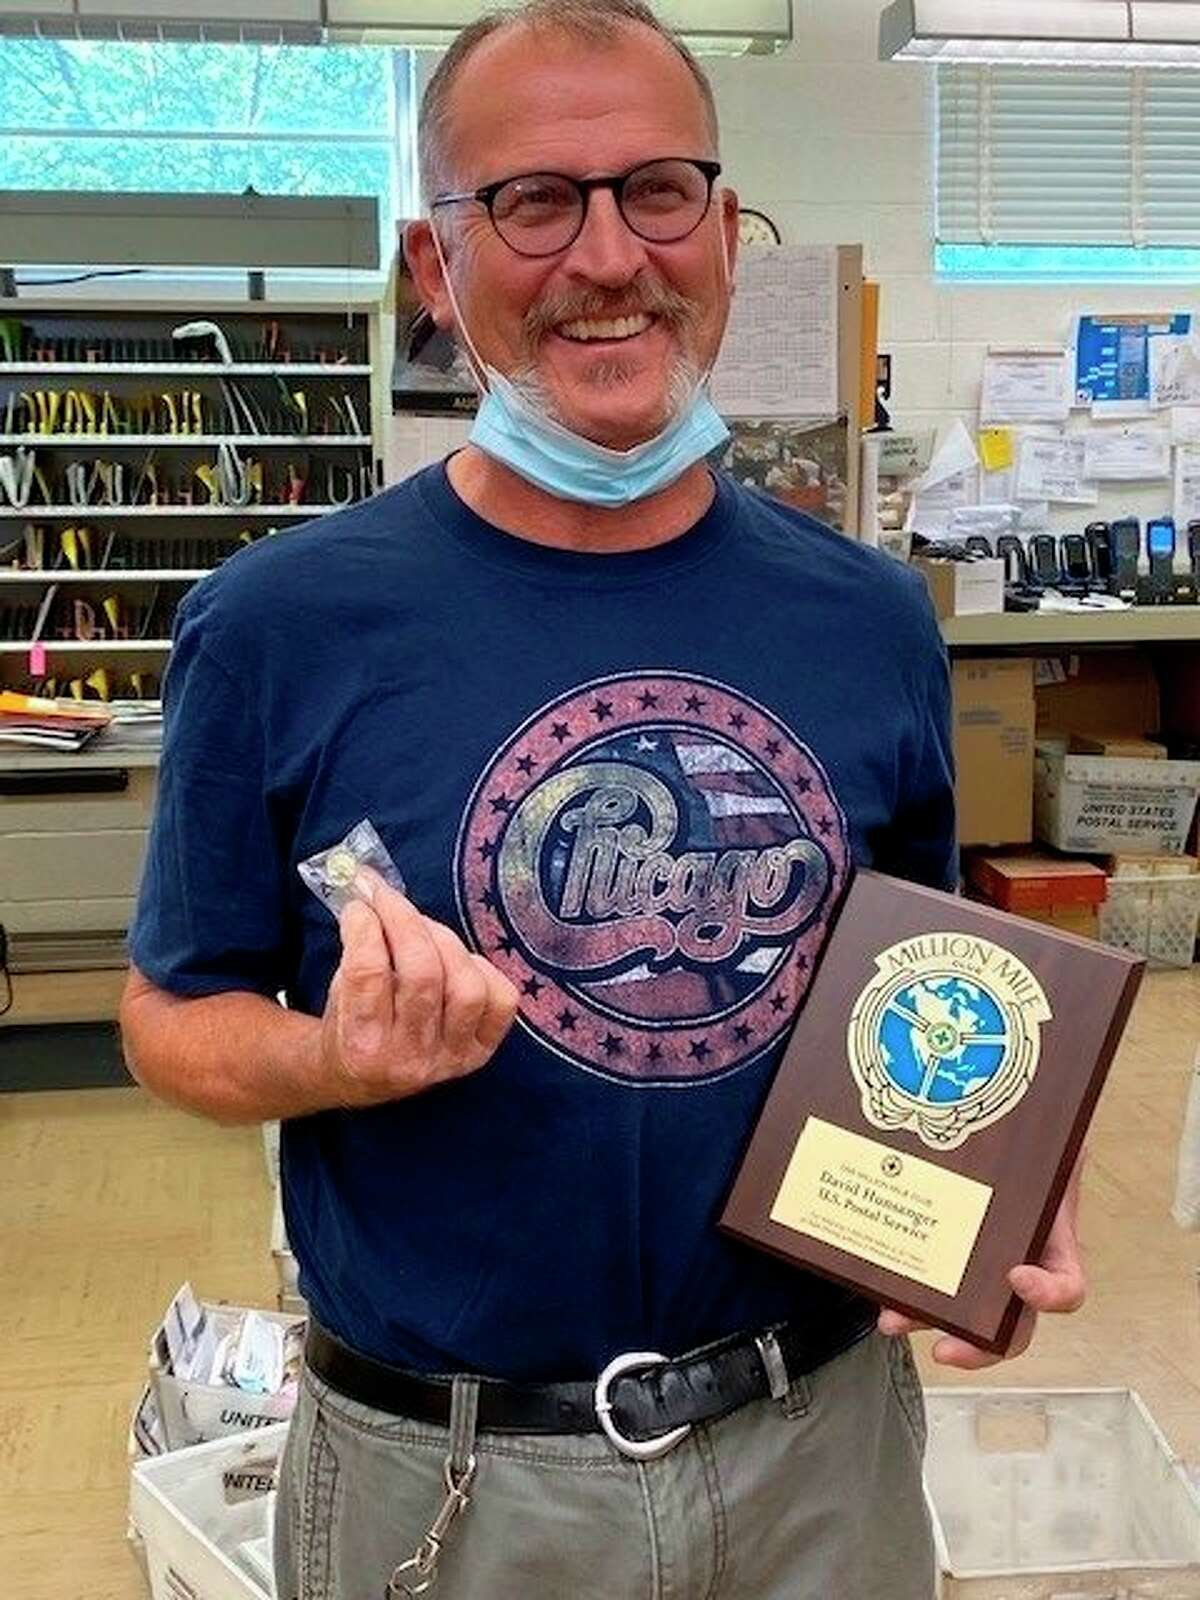 Dave Hunsanger poses for a photo with his Million Mile Award plaque. (Courtesy Photo)